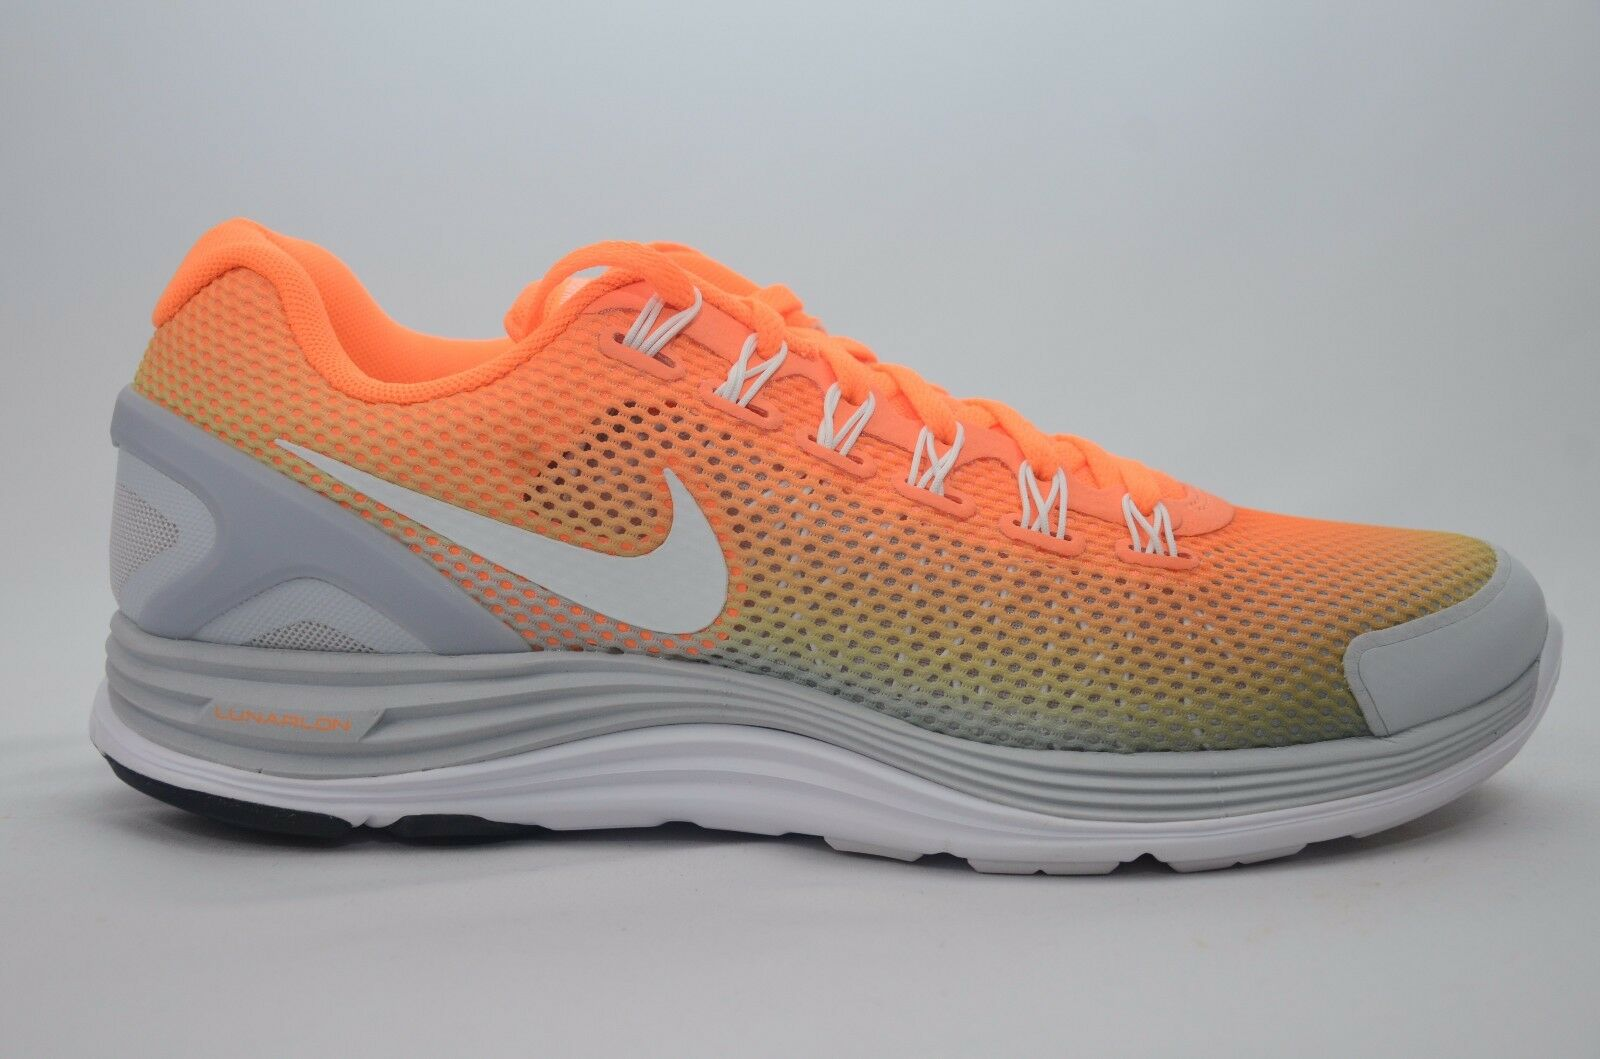 Womens Nike Lunarglide + 4 Breathe Sz 10.5-11.5 New in Box NO Top Lid 579999 810